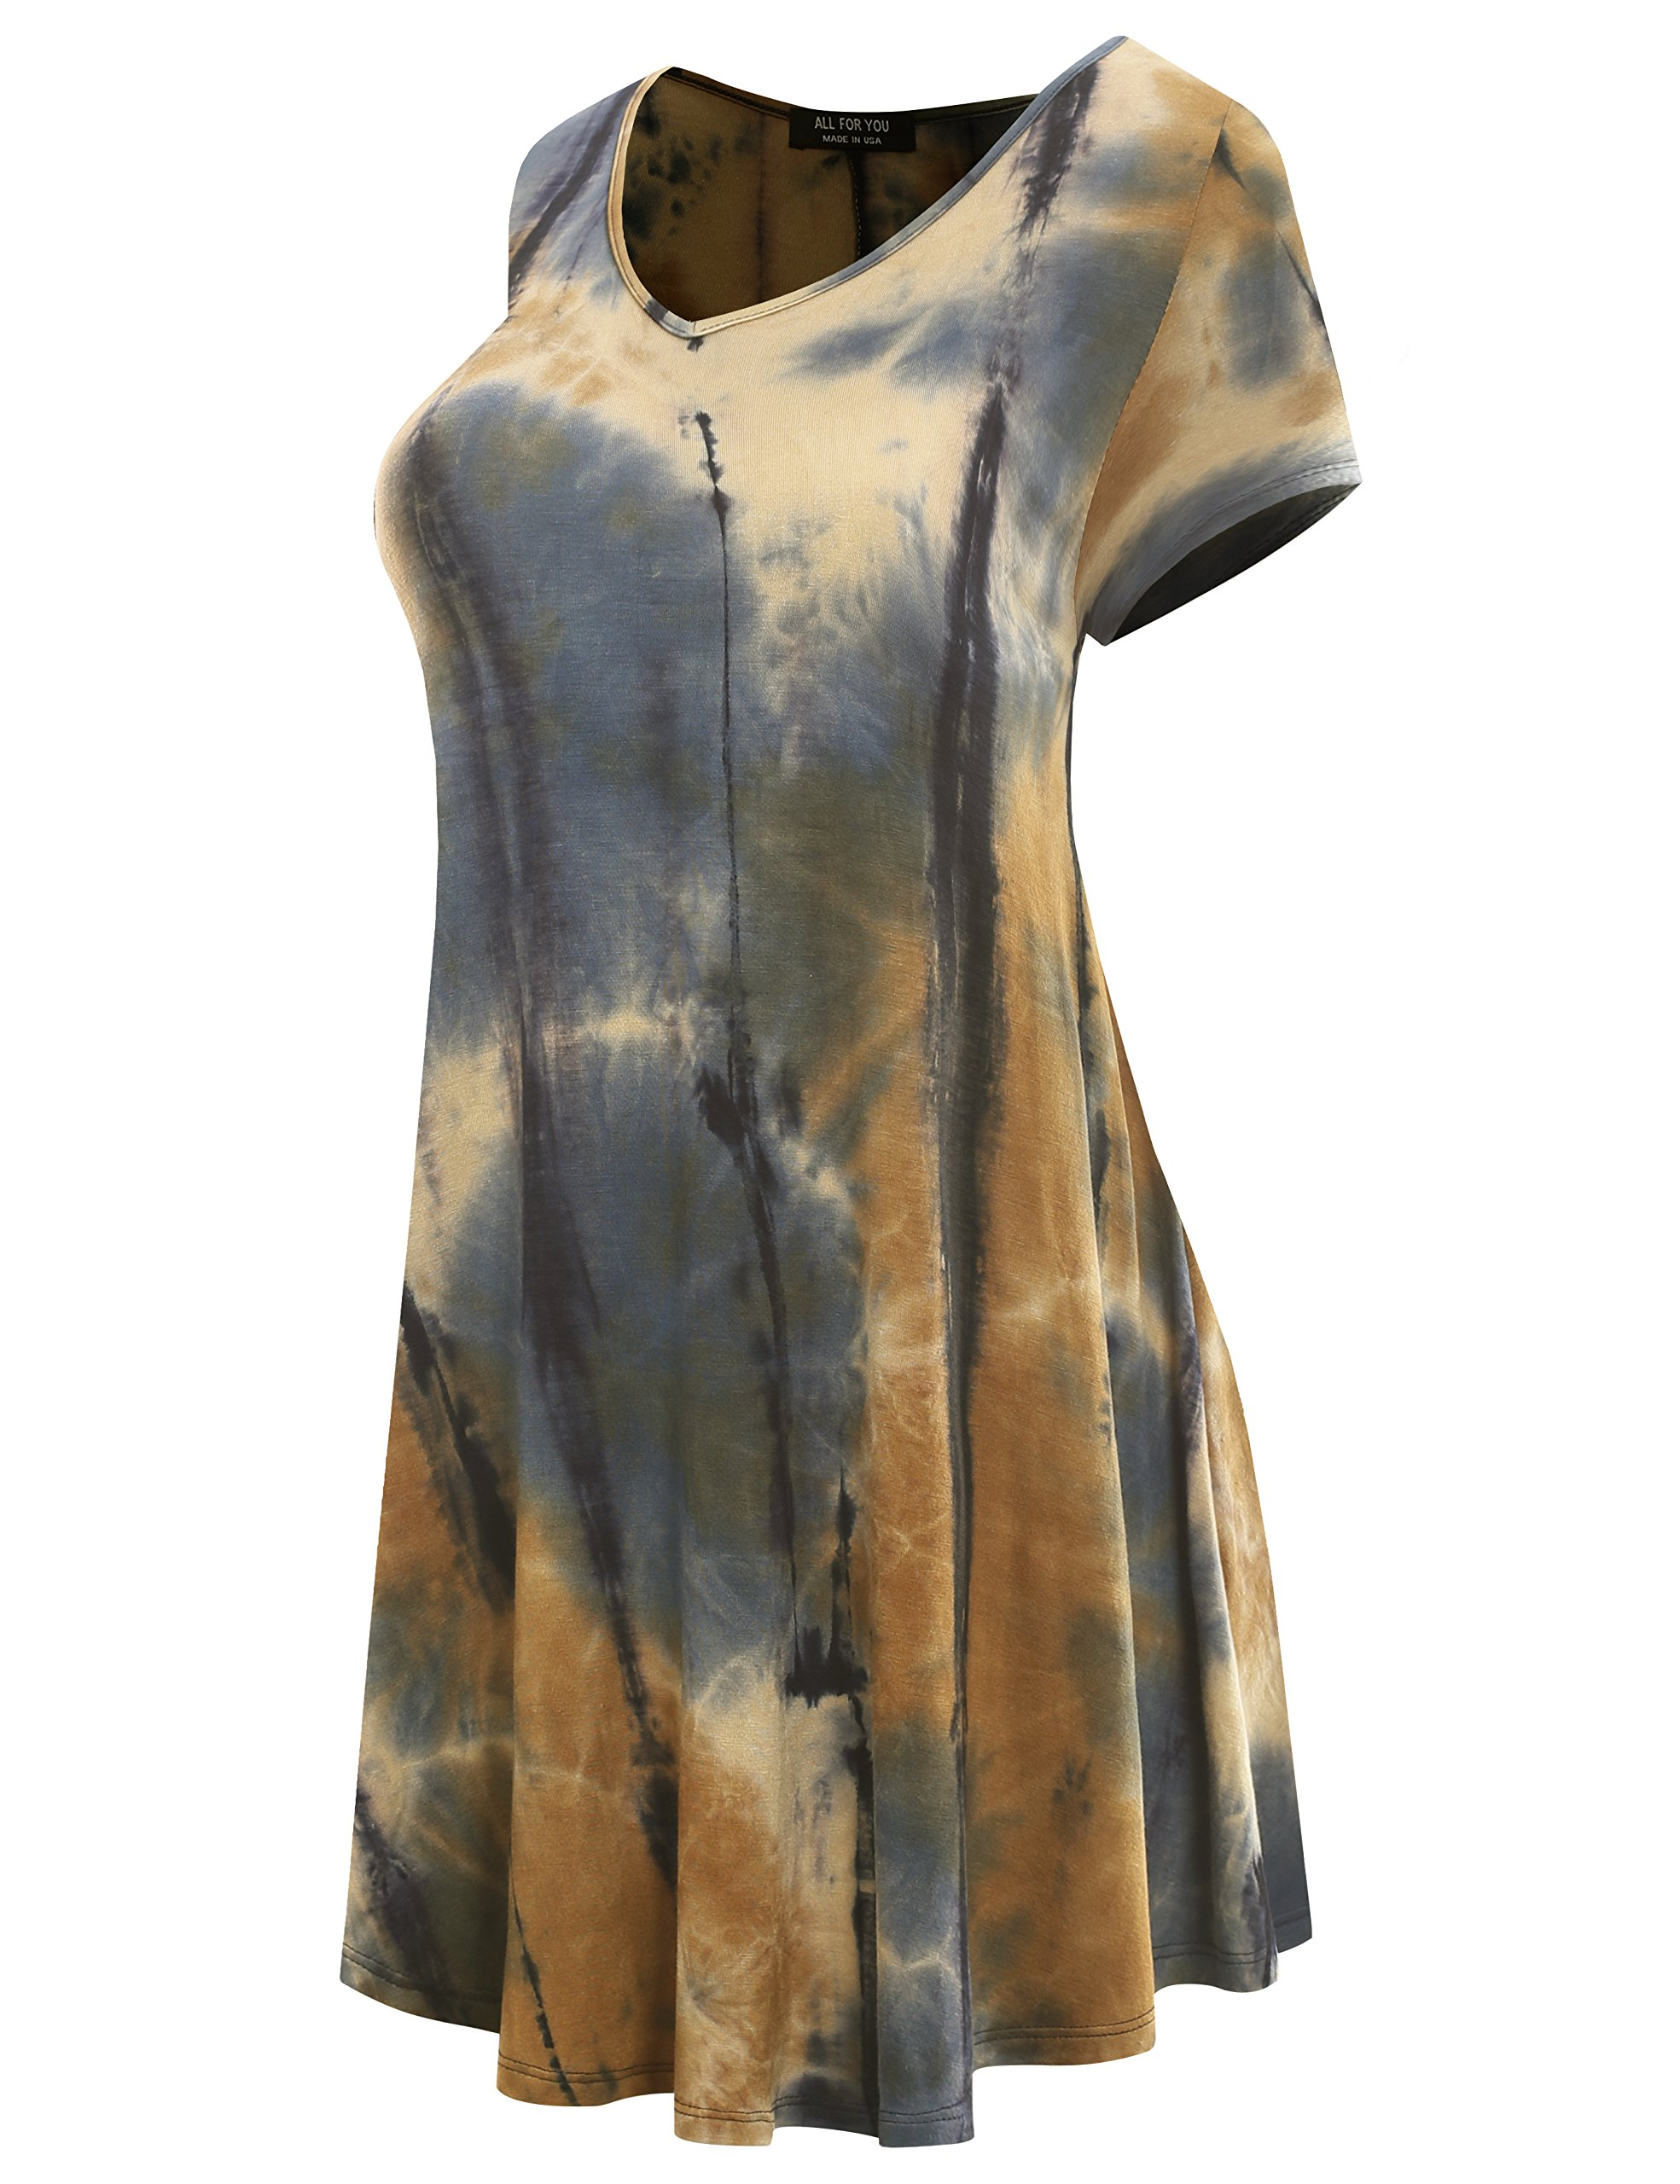 All for You Women's Short Sleeve V-Neck Flare Hem Floral Print Tunic Tie-Dye Taupe 2 X-Large by A.F.Y (Image #2)